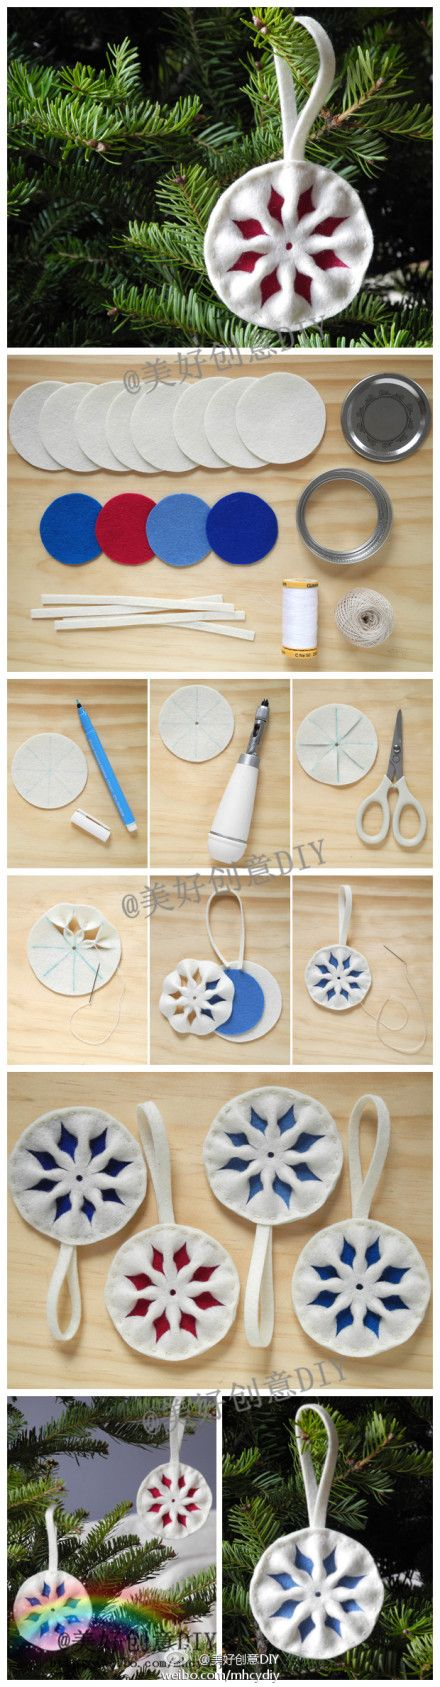 DIY Felt Christmas Ornament Tutorial